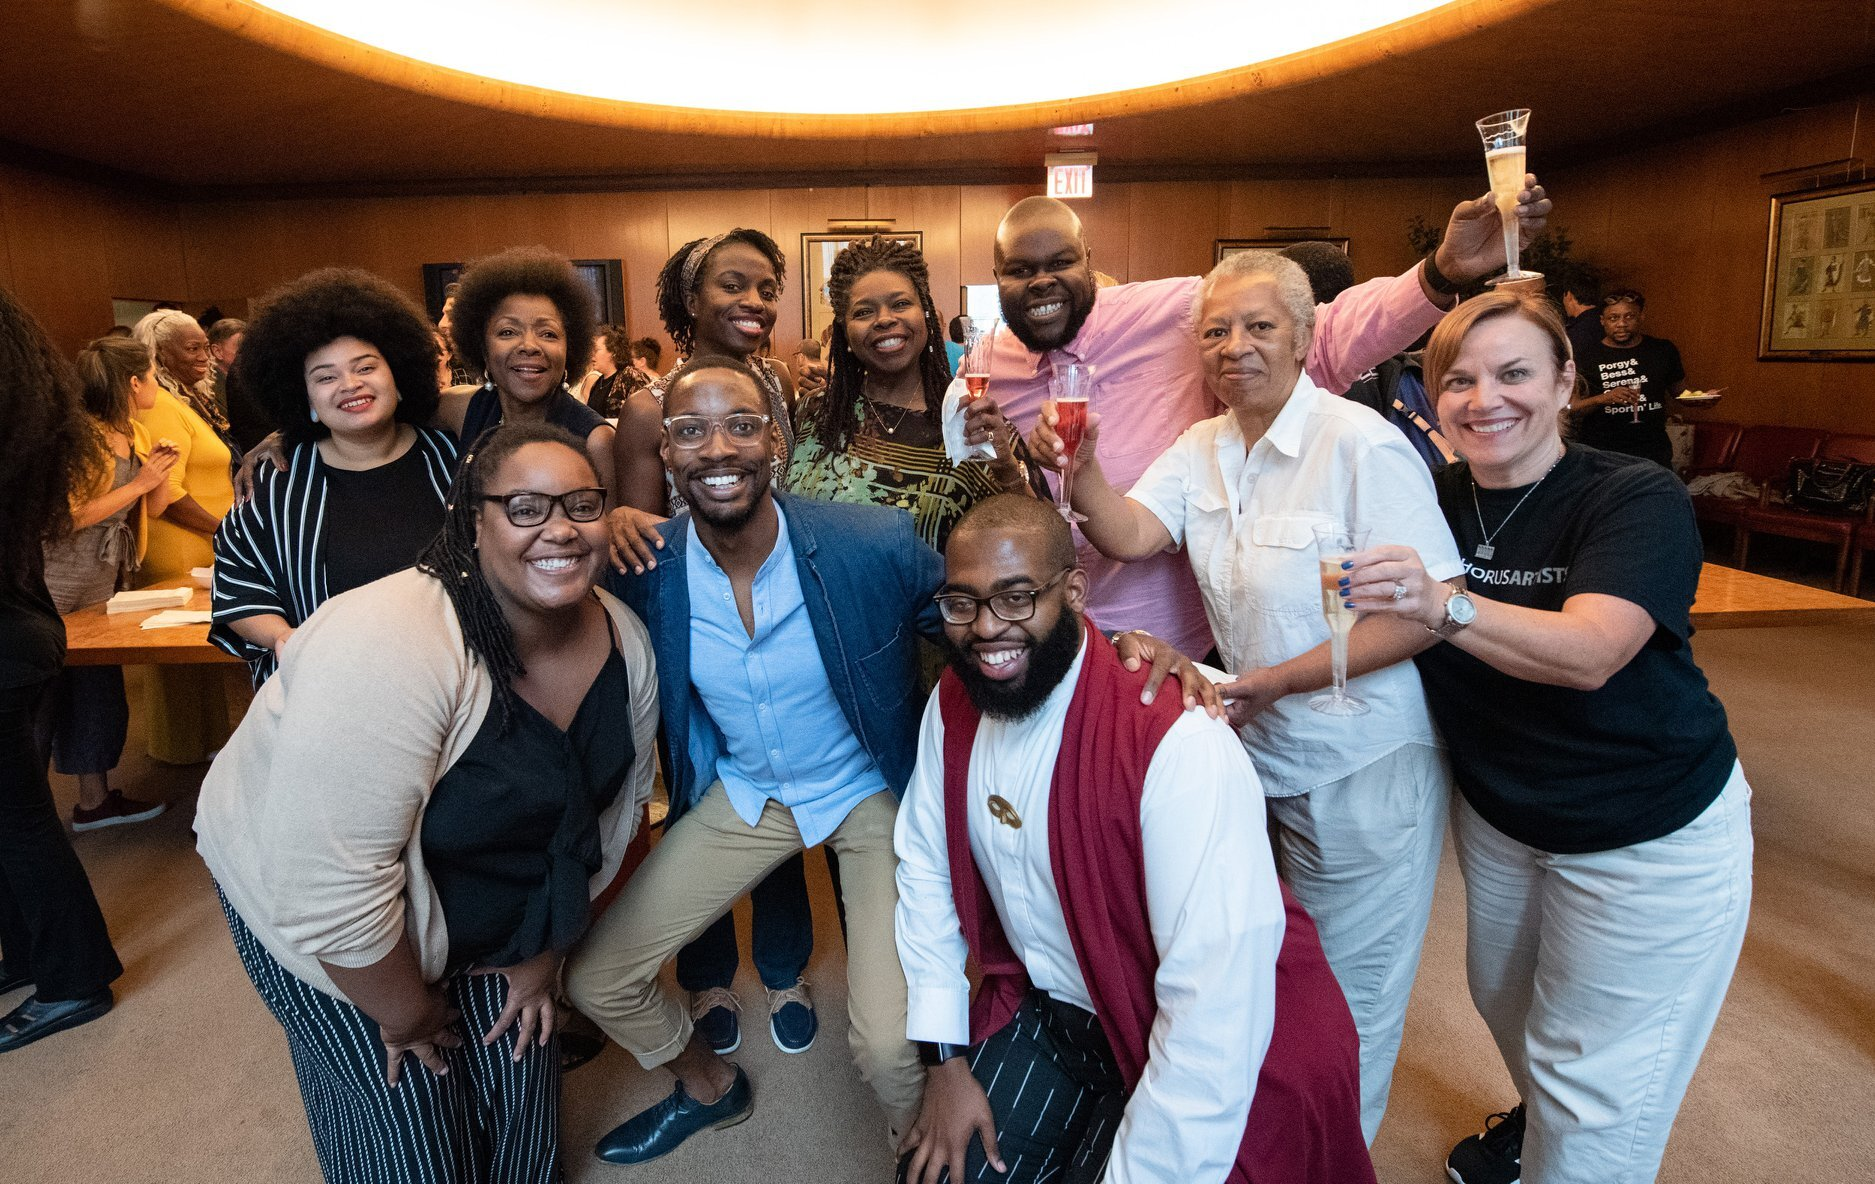 Members of the full-time Met chorus mingle (and enjoy a fine fizzy beverage) with members of the Porgy chorus. (Photo: Jonathan Tichler.)